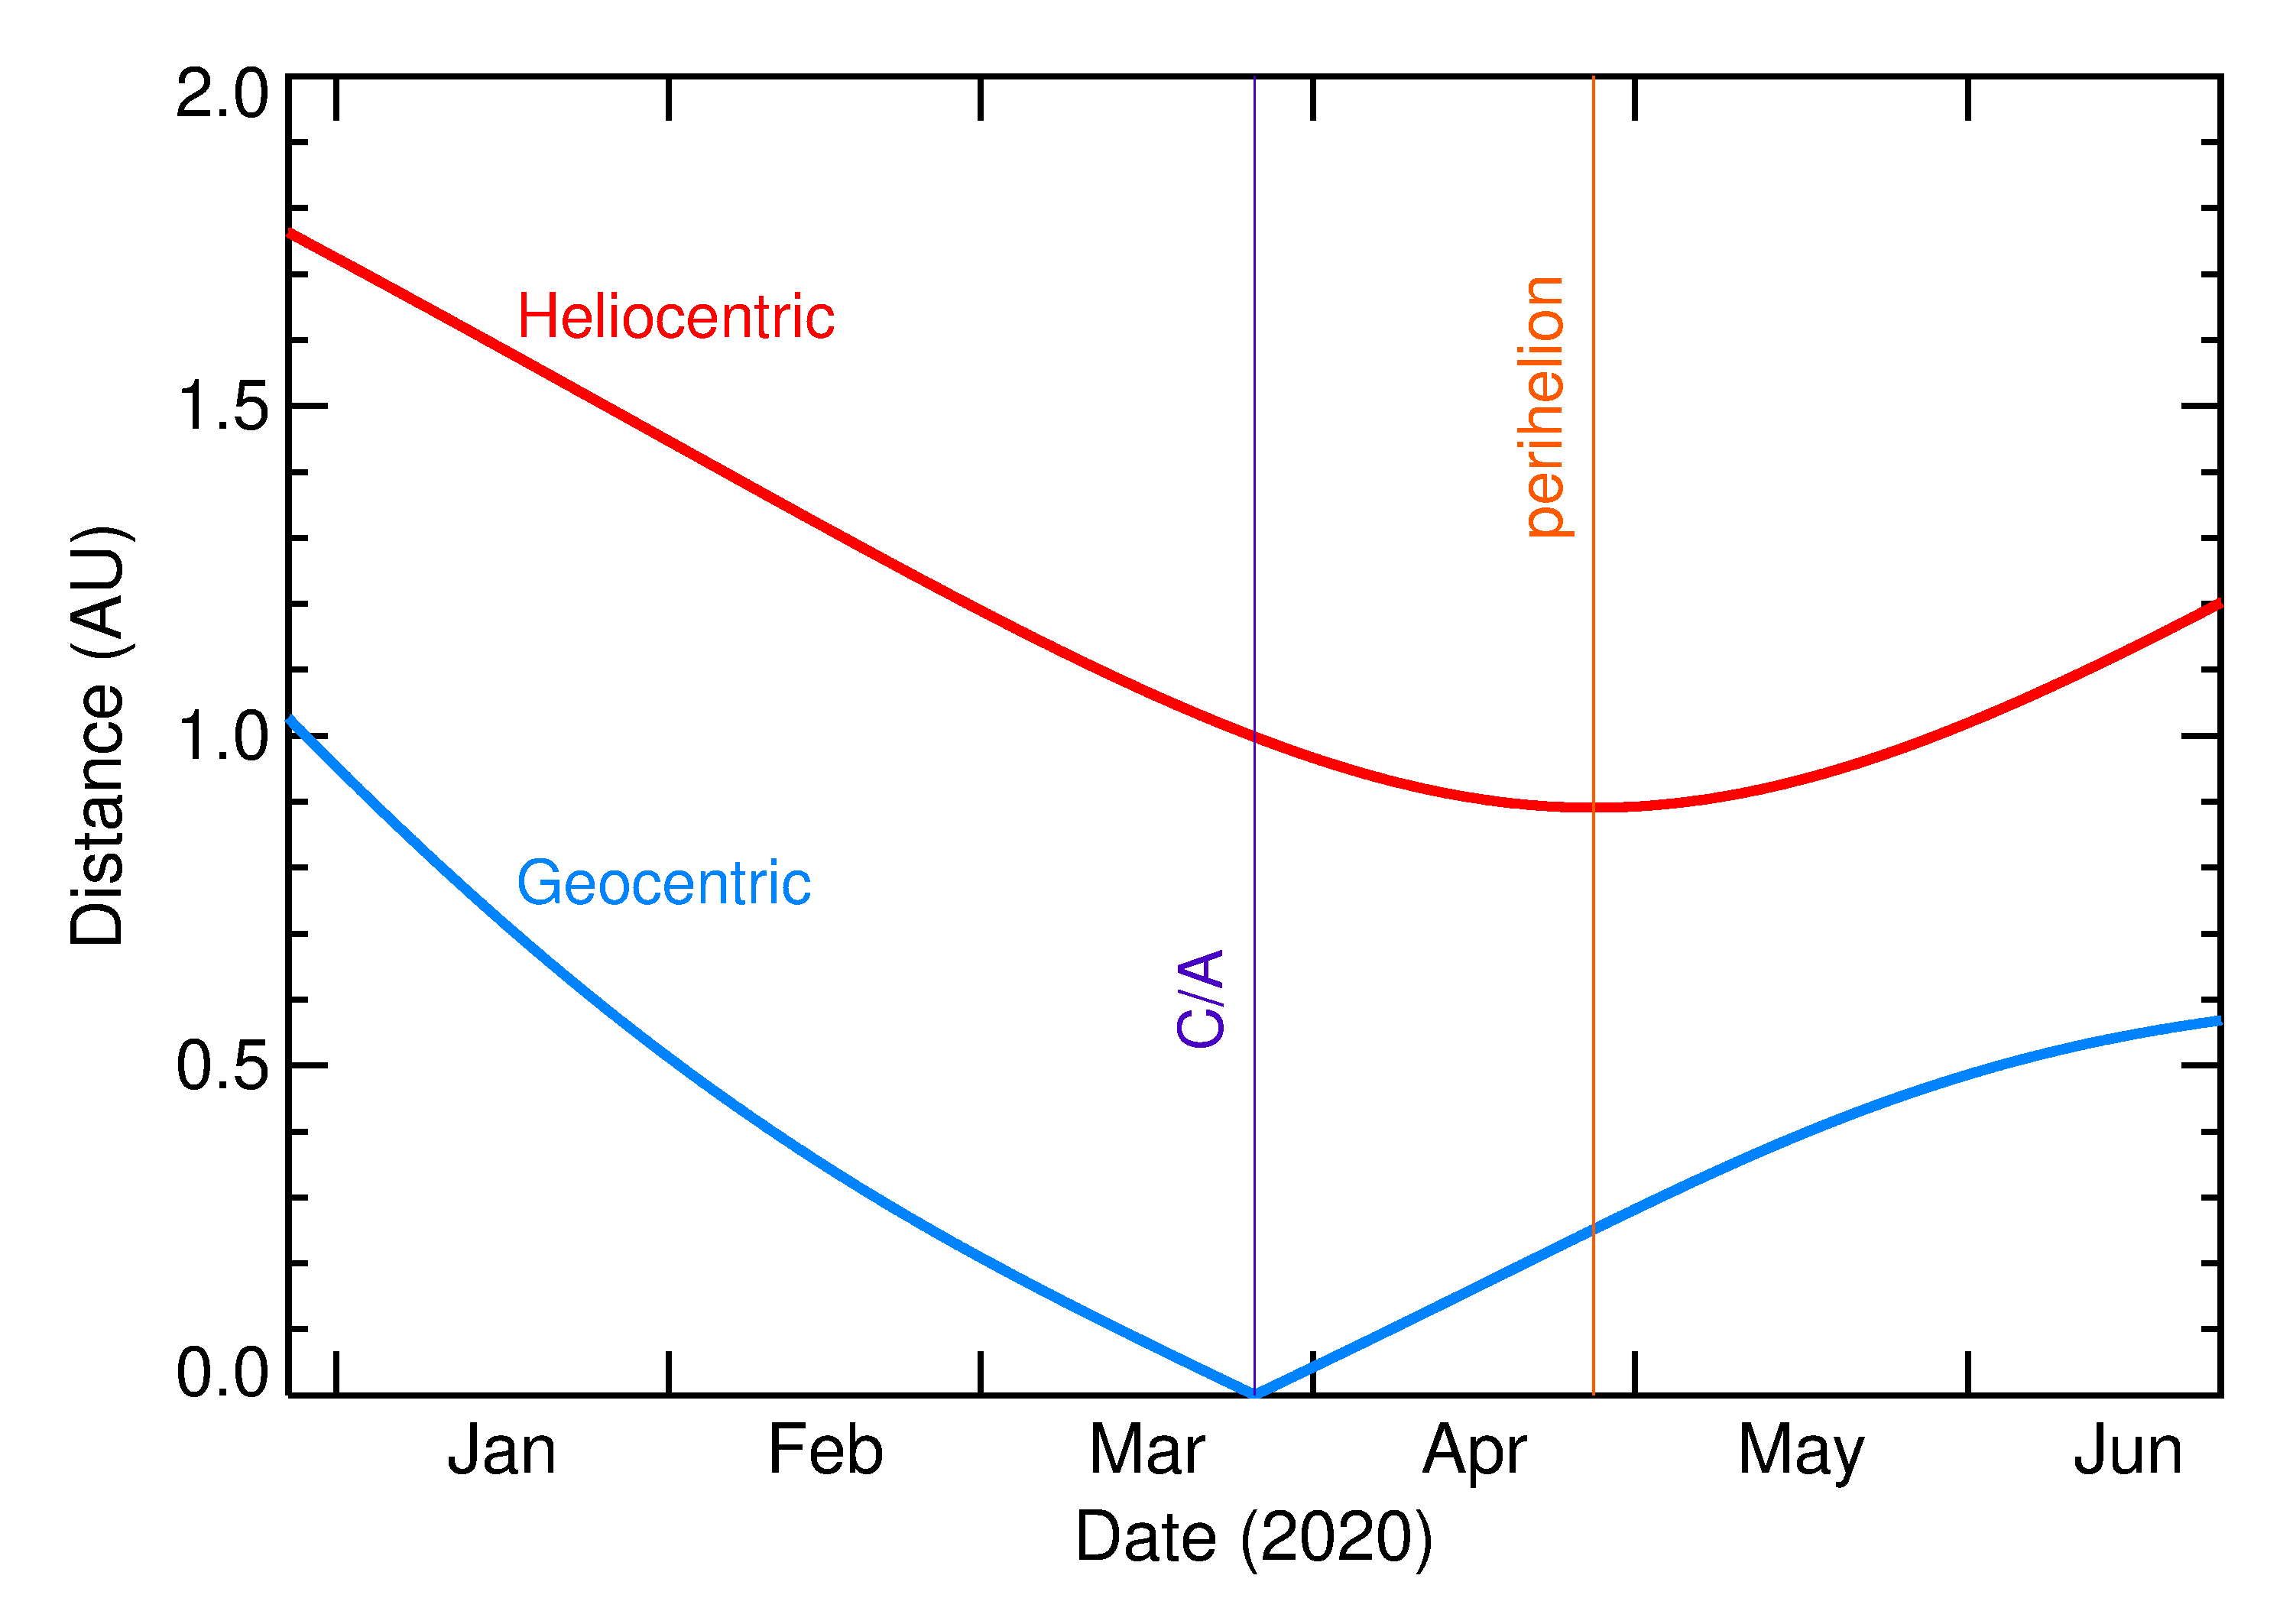 Heliocentric and Geocentric Distances of 2020 FJ4 in the months around closest approach